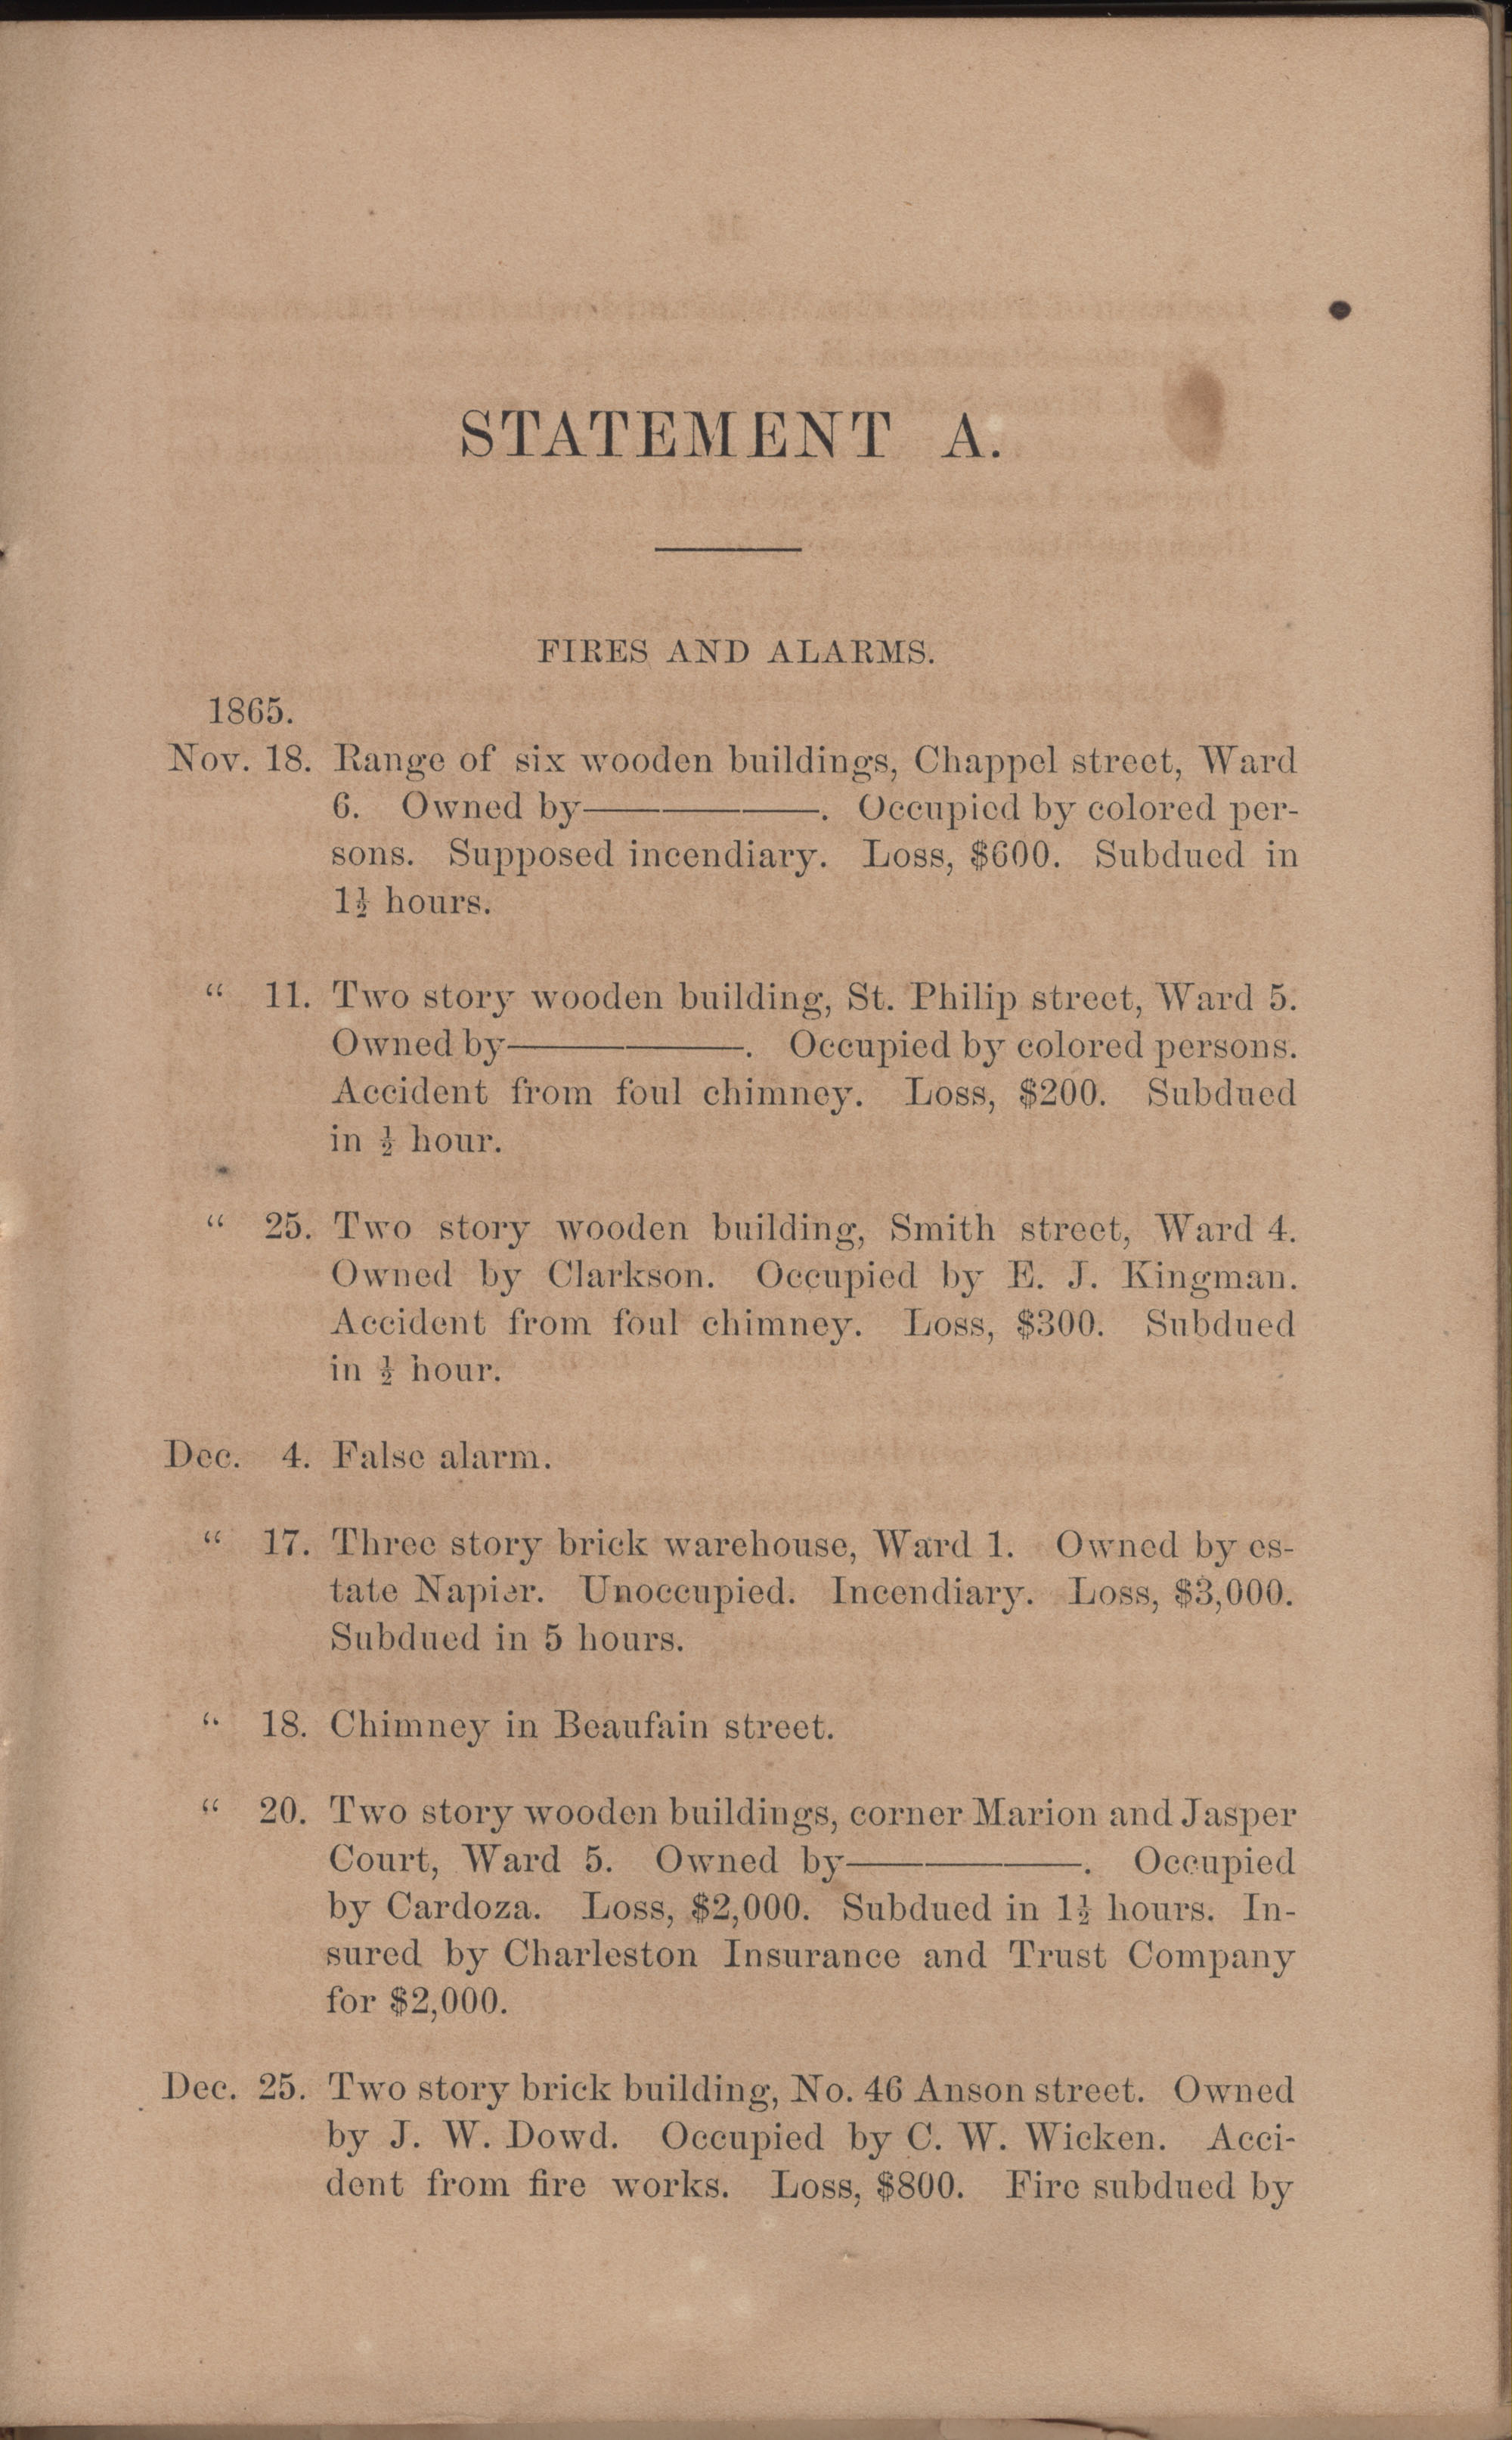 Annual Report of the Chief of the Fire Department of the City of Charleston, page 109